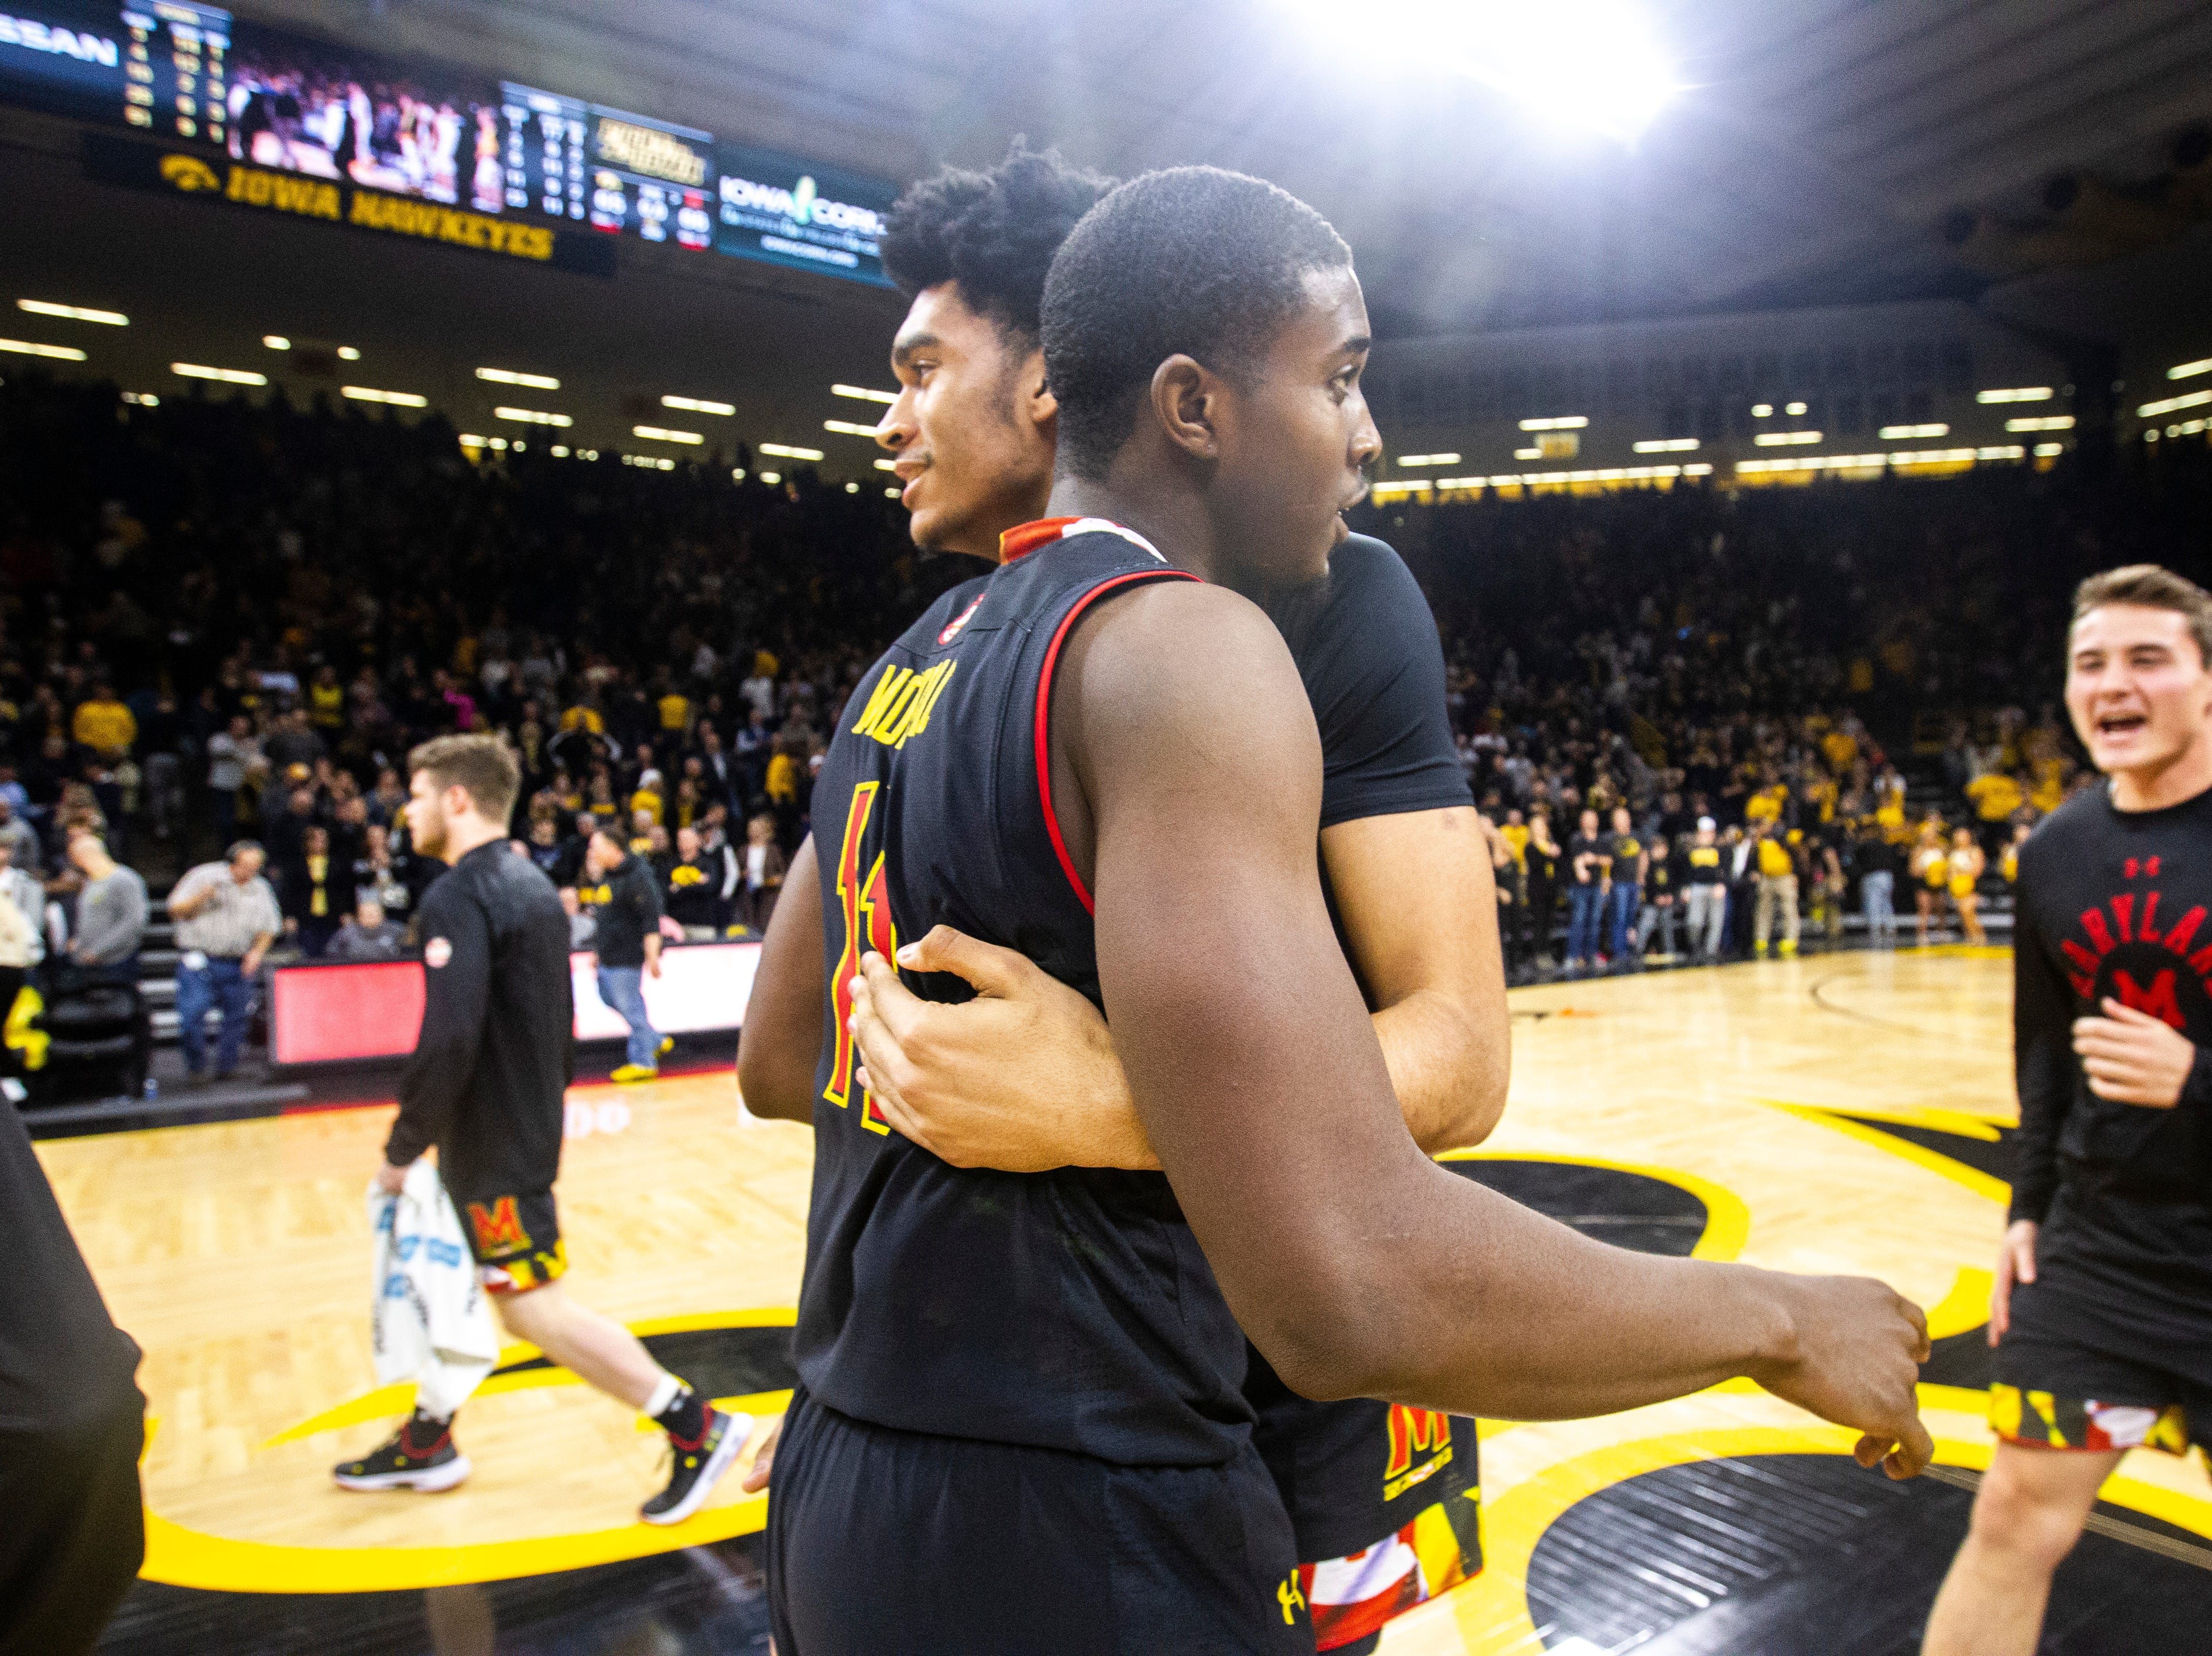 Maryland guard Darryl Morsell (11) gets a hug from Maryland forward Ricky Lindo Jr. after a NCAA Big Ten Conference men's basketball game against the Iowa Hawkeyes on Tuesday, Feb. 19, 2019 at Carver-Hawkeye Arena in Iowa City, Iowa.